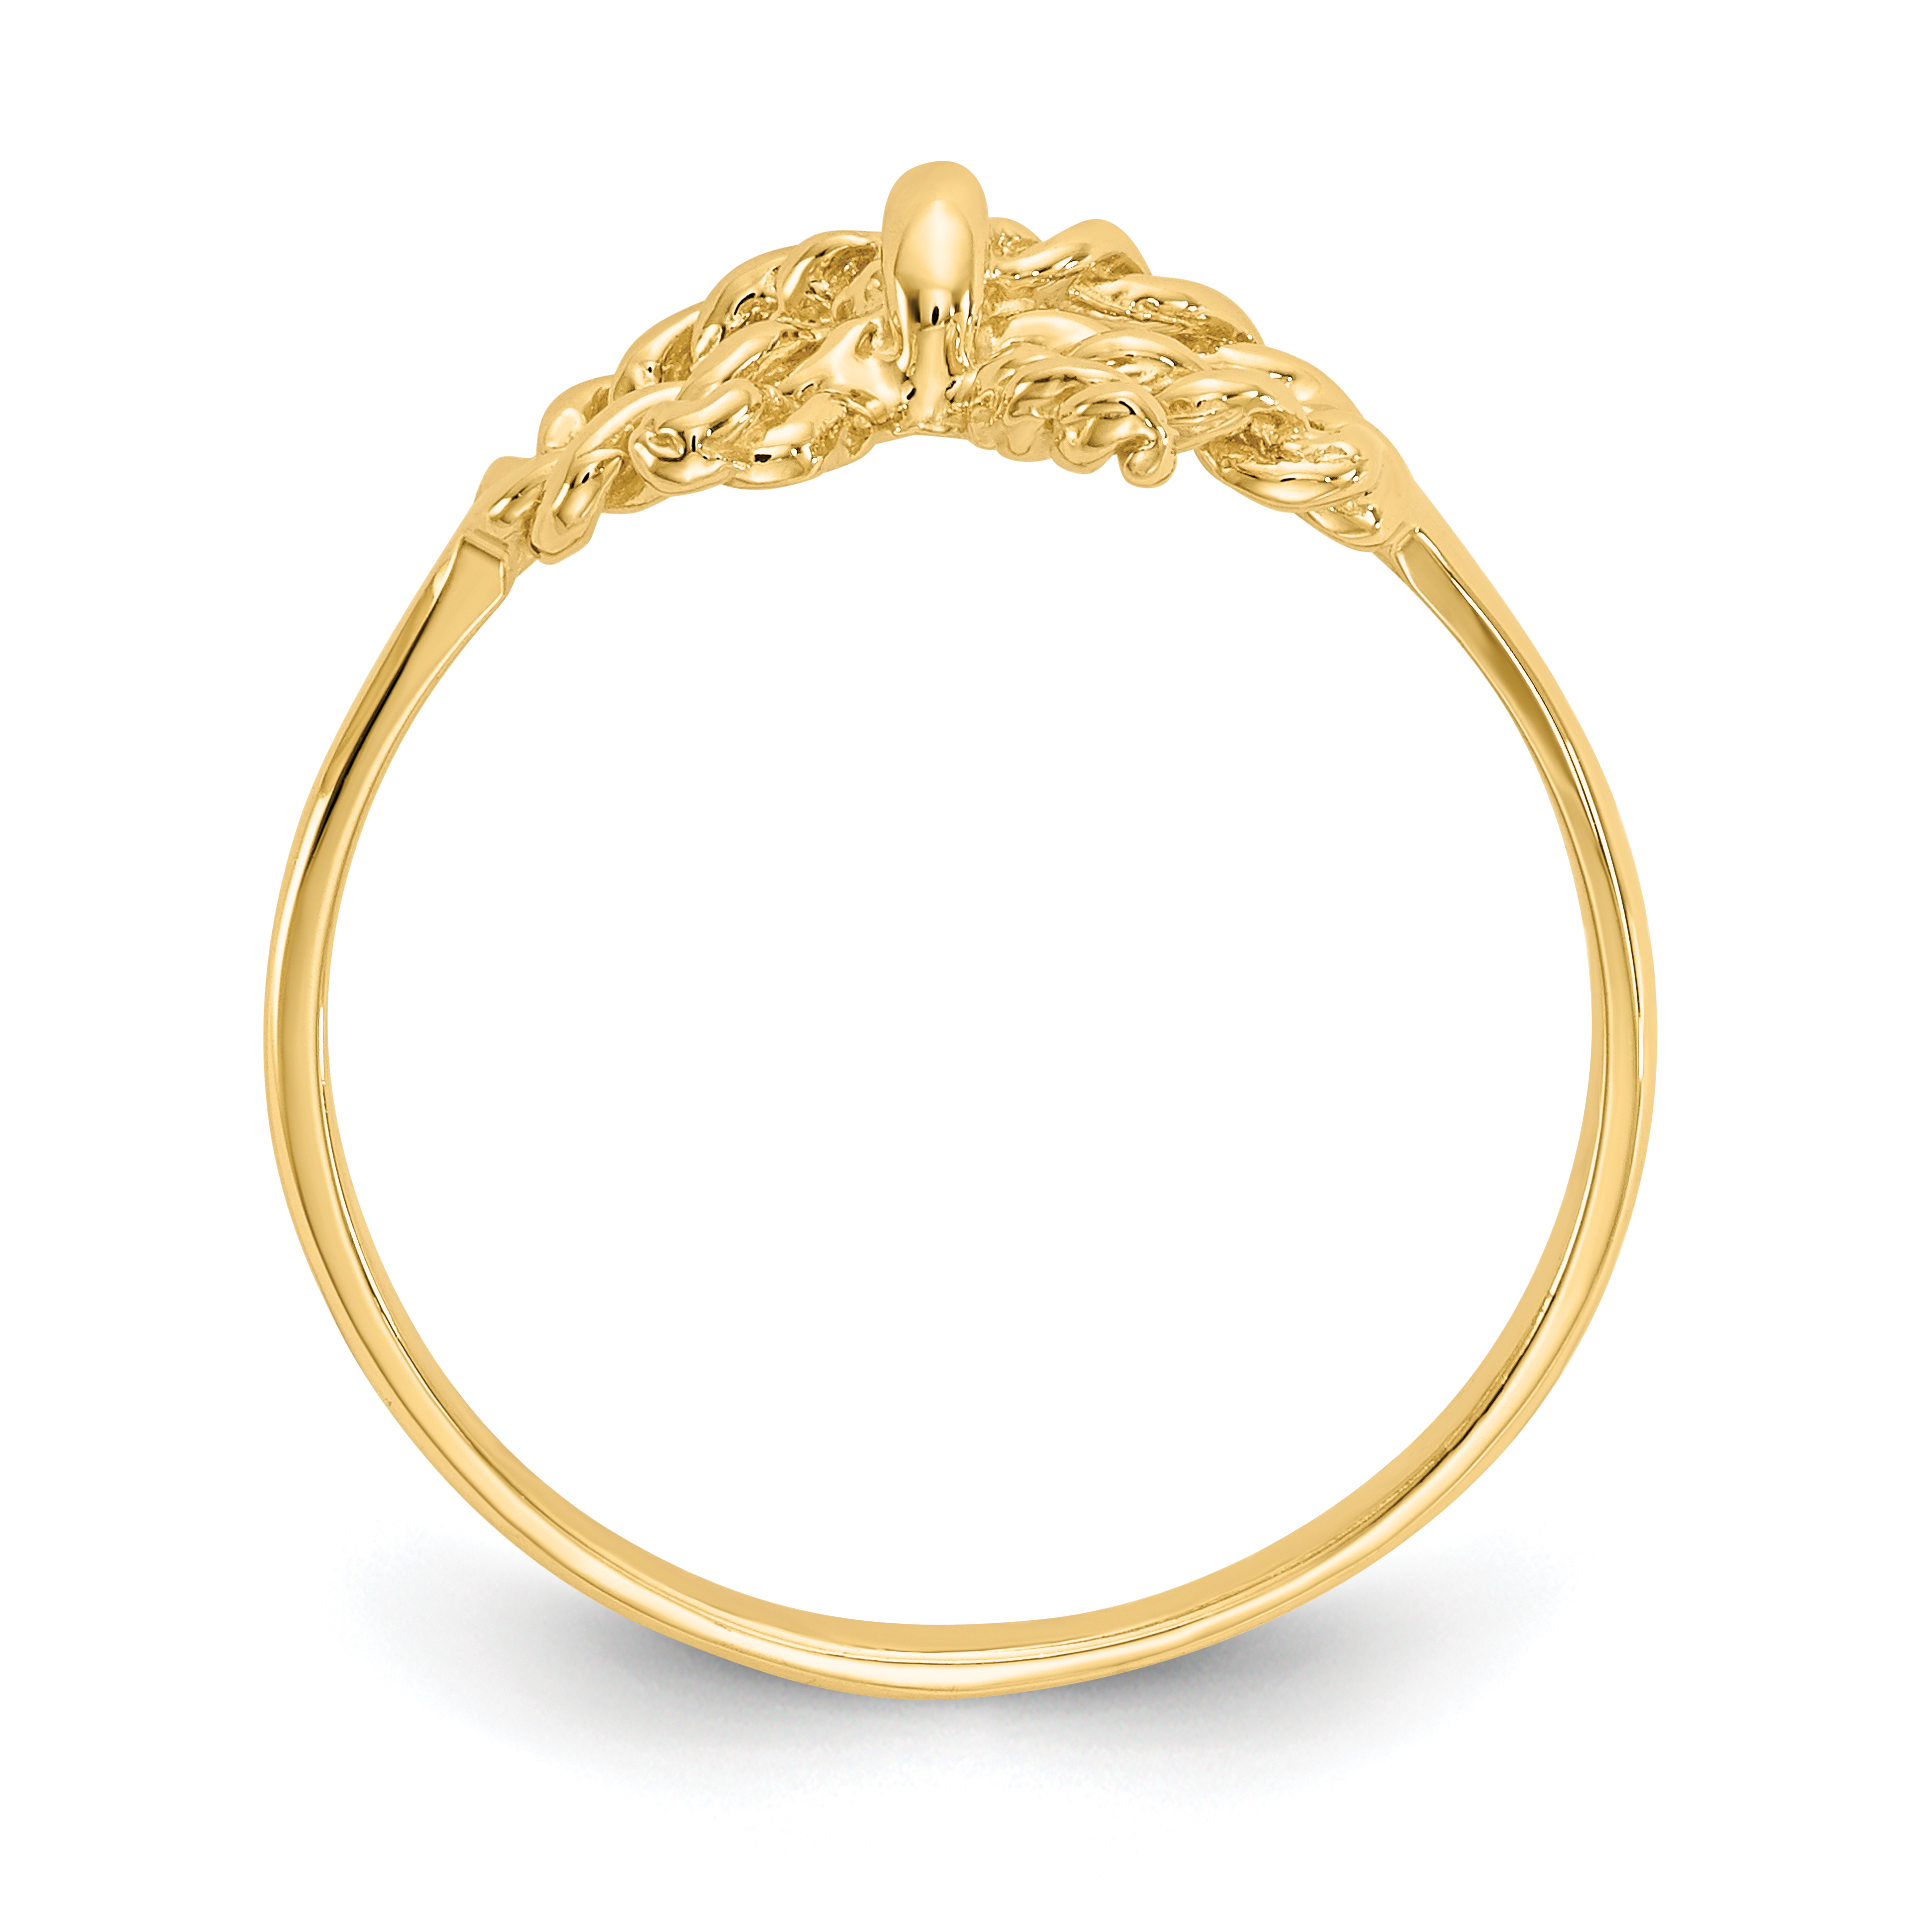 14k Yellow Gold Bow Band Ring Size 6.00 Fine Jewelry Gifts For Women For Her - image 1 of 5